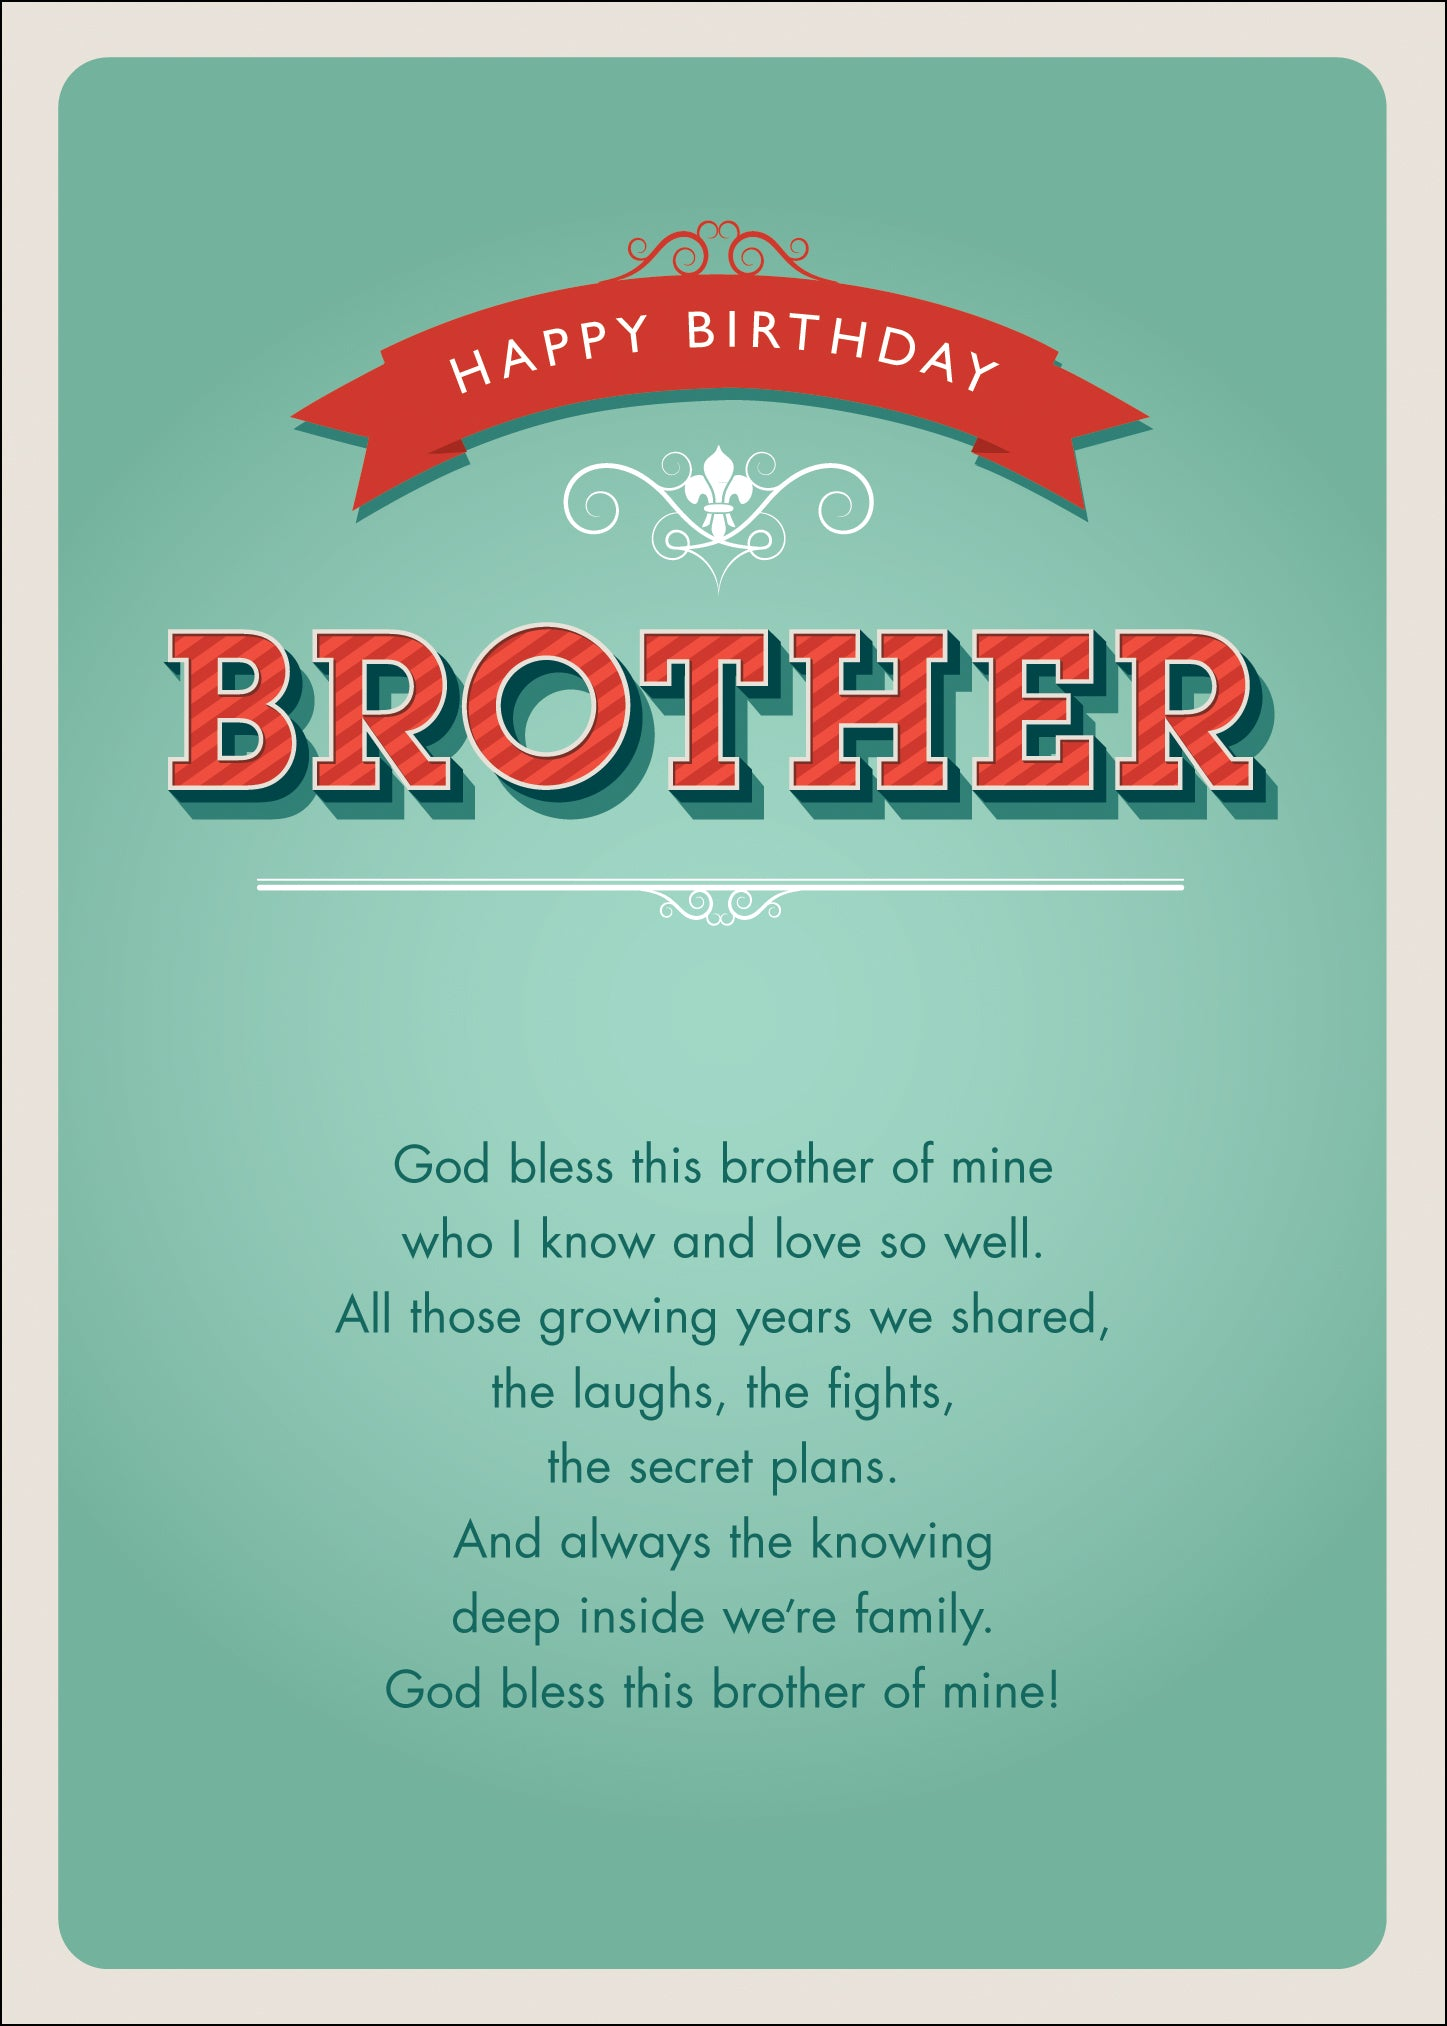 Happy Birthday - BrotherHappy Birthday - Brother